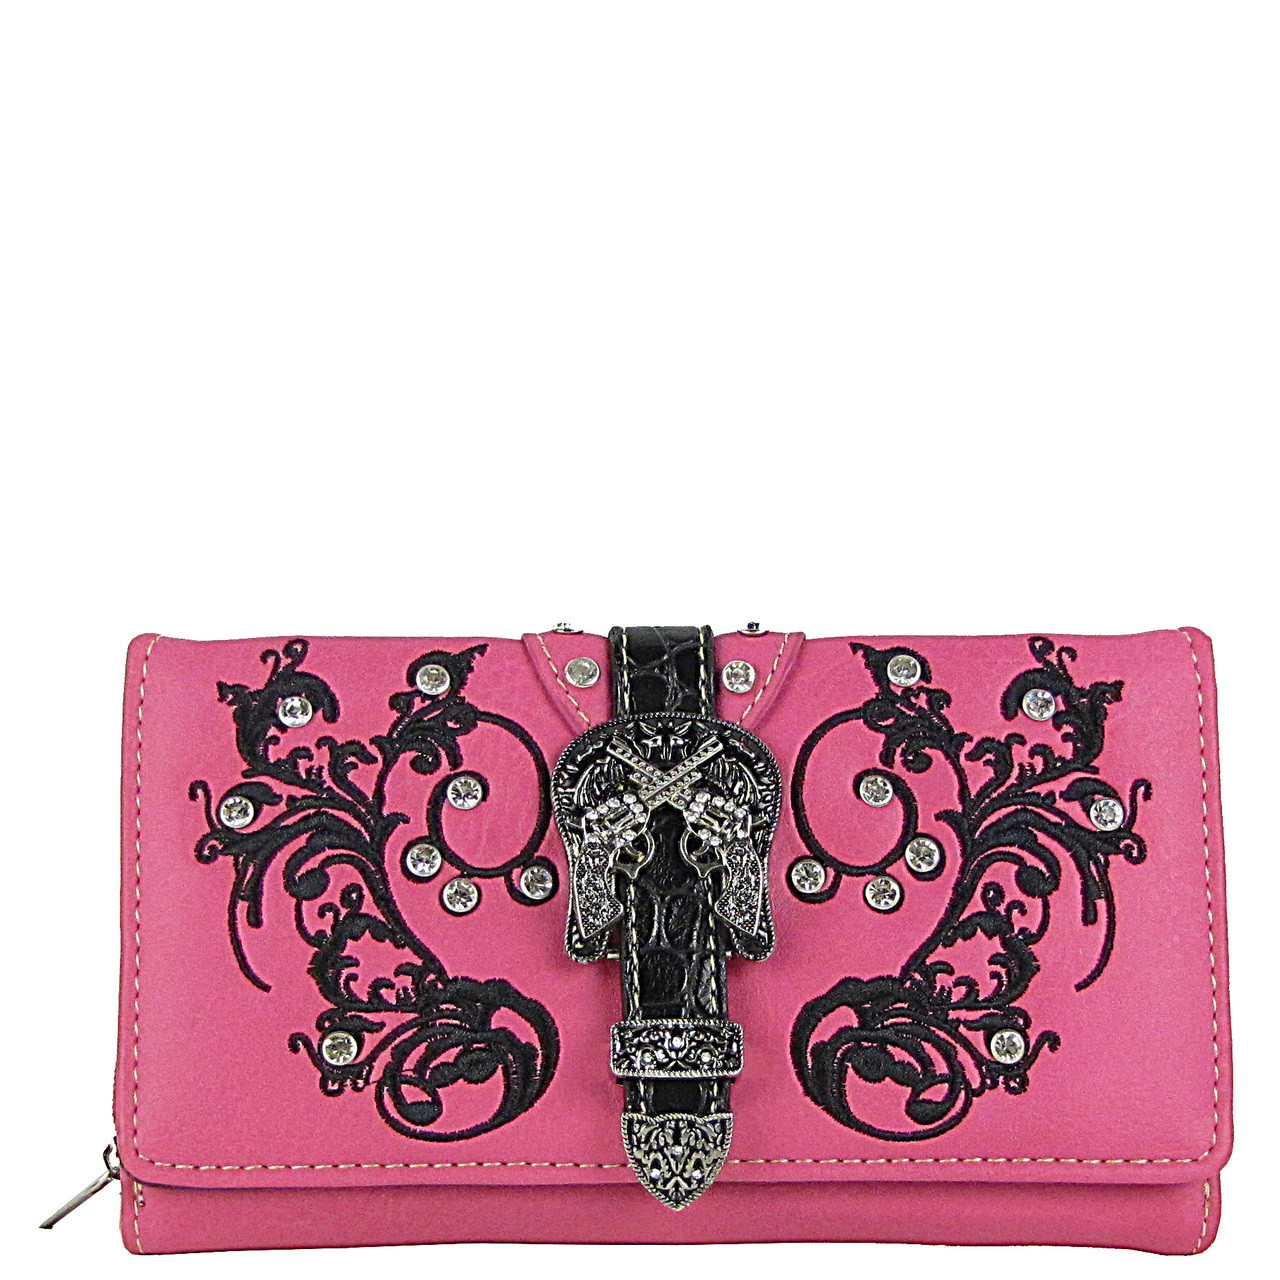 HOT PINK RHINESTONE STUDDED BUCKLE WITH PISTOL LOOK CHEKCBOOK WALLET CB1-1278HPK